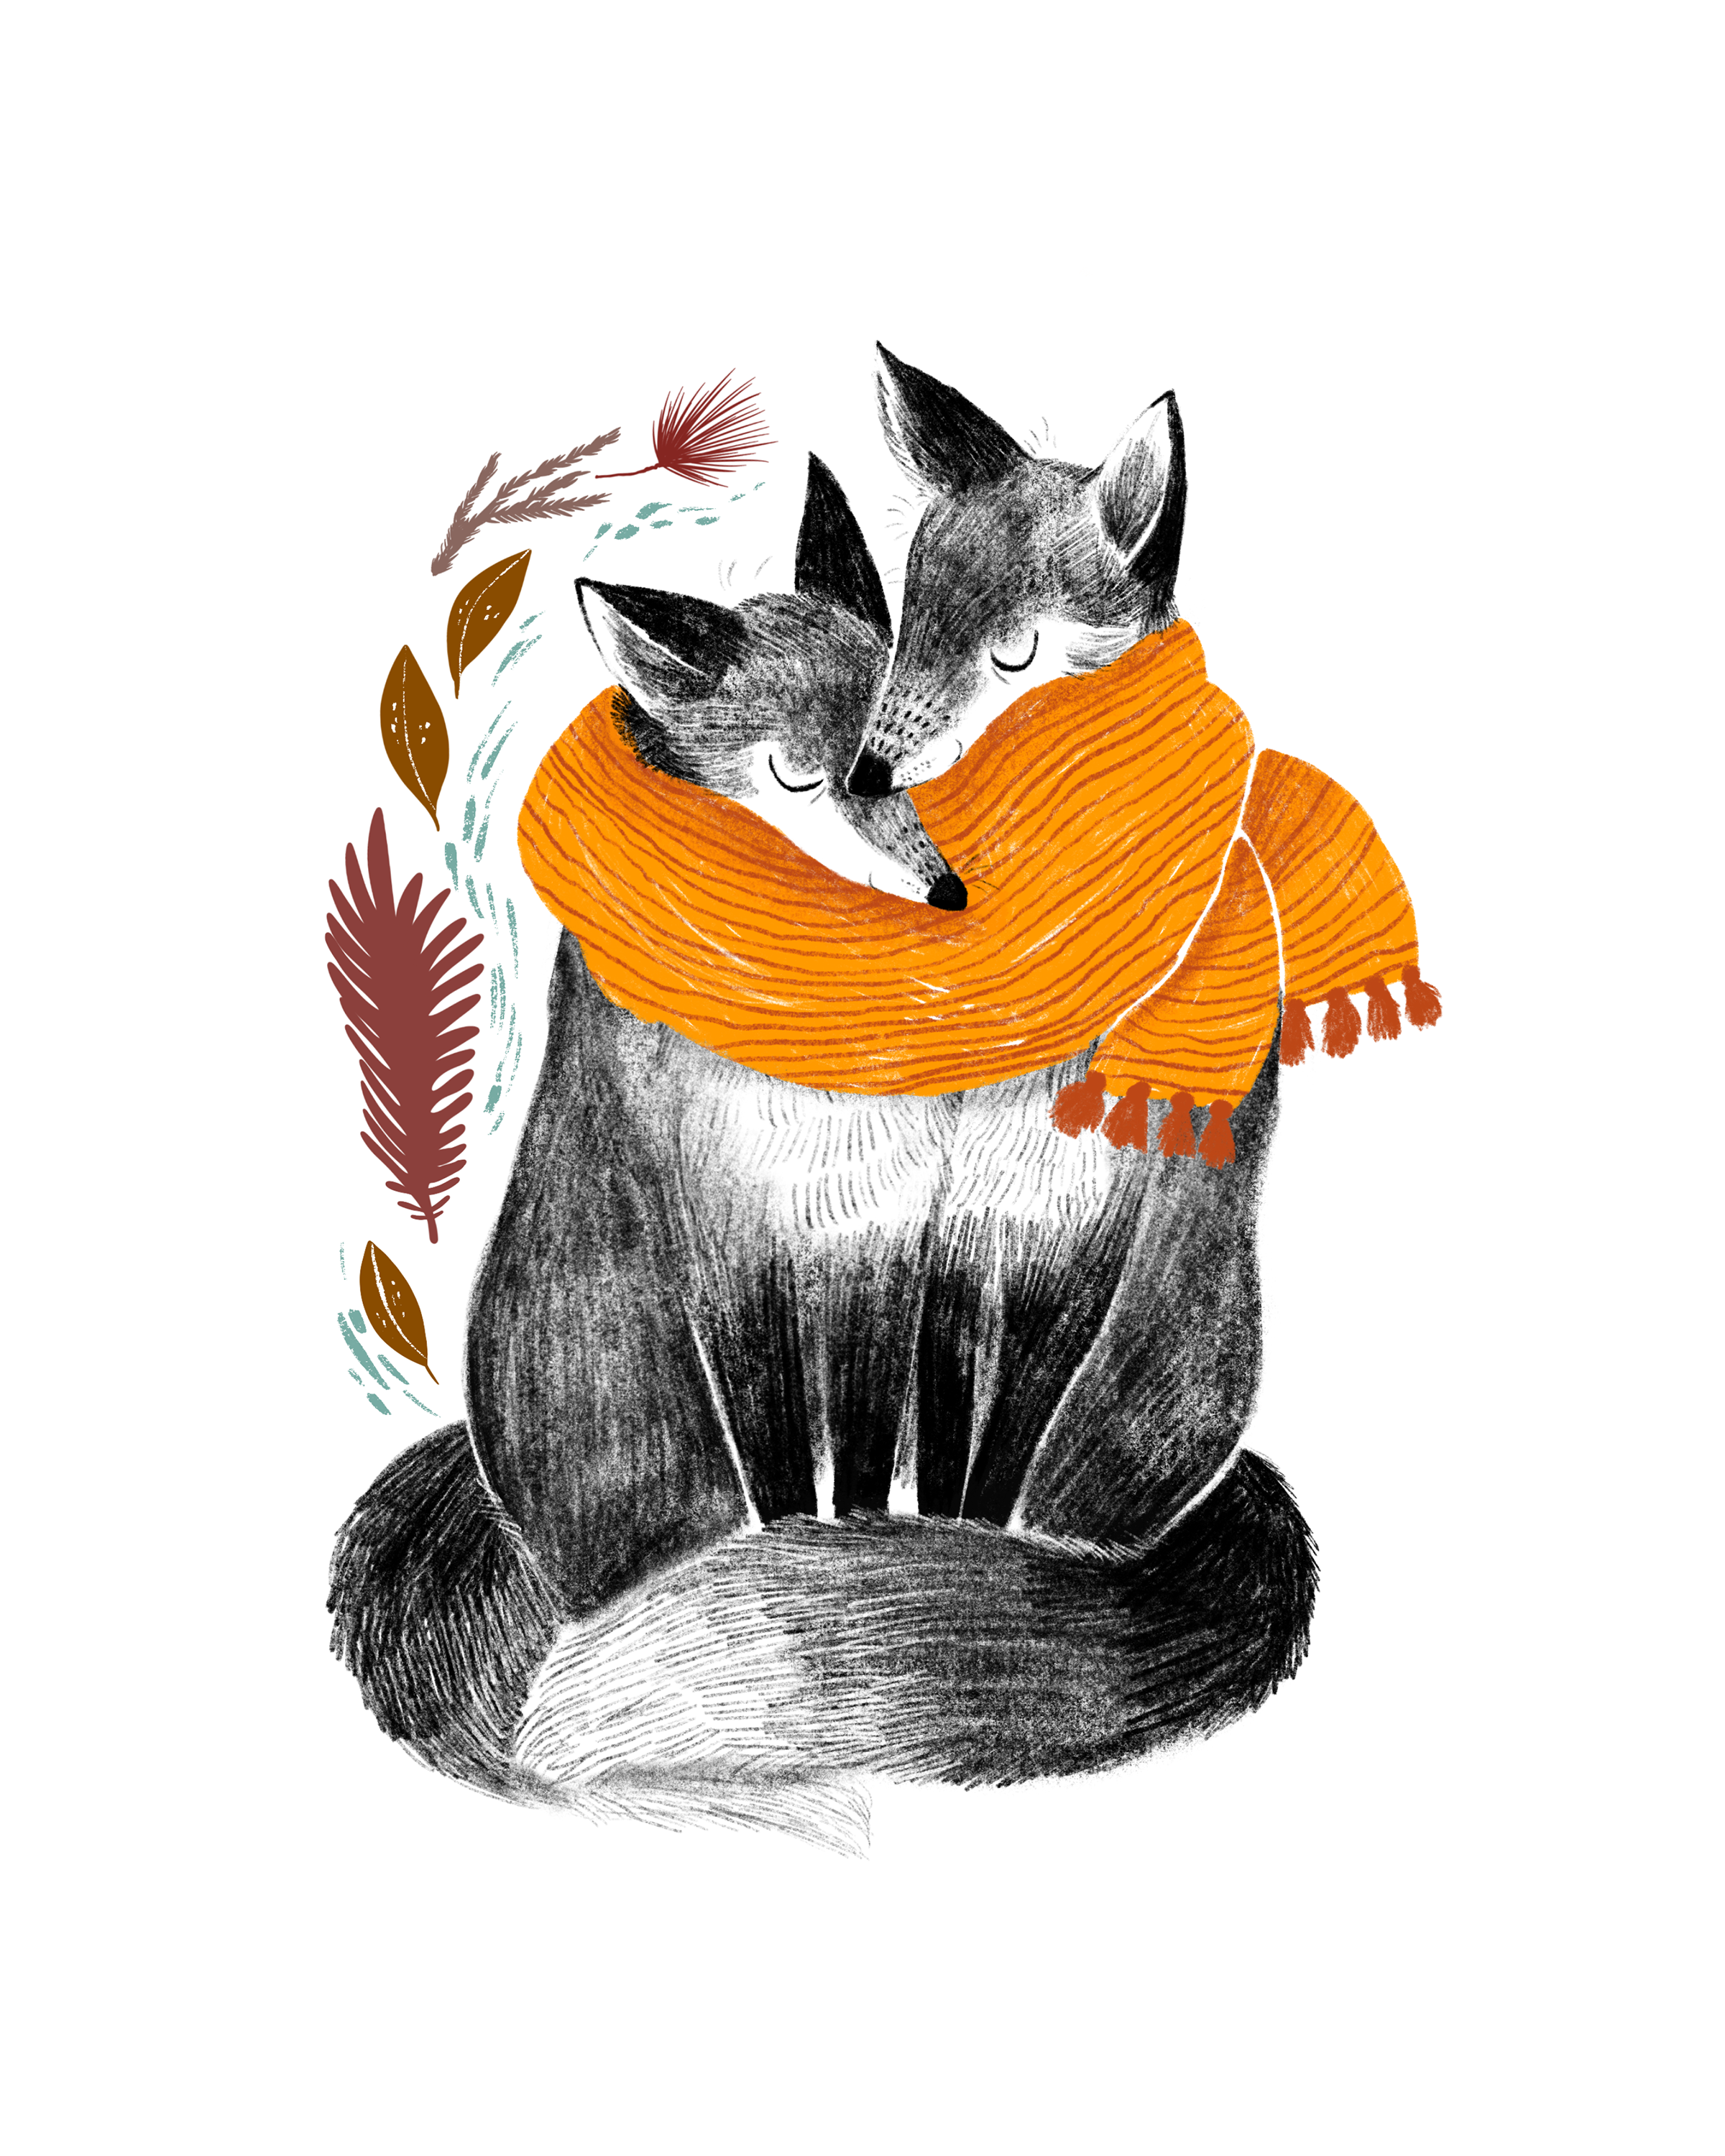 Snuggling Foxes // Digital illustration, 2019